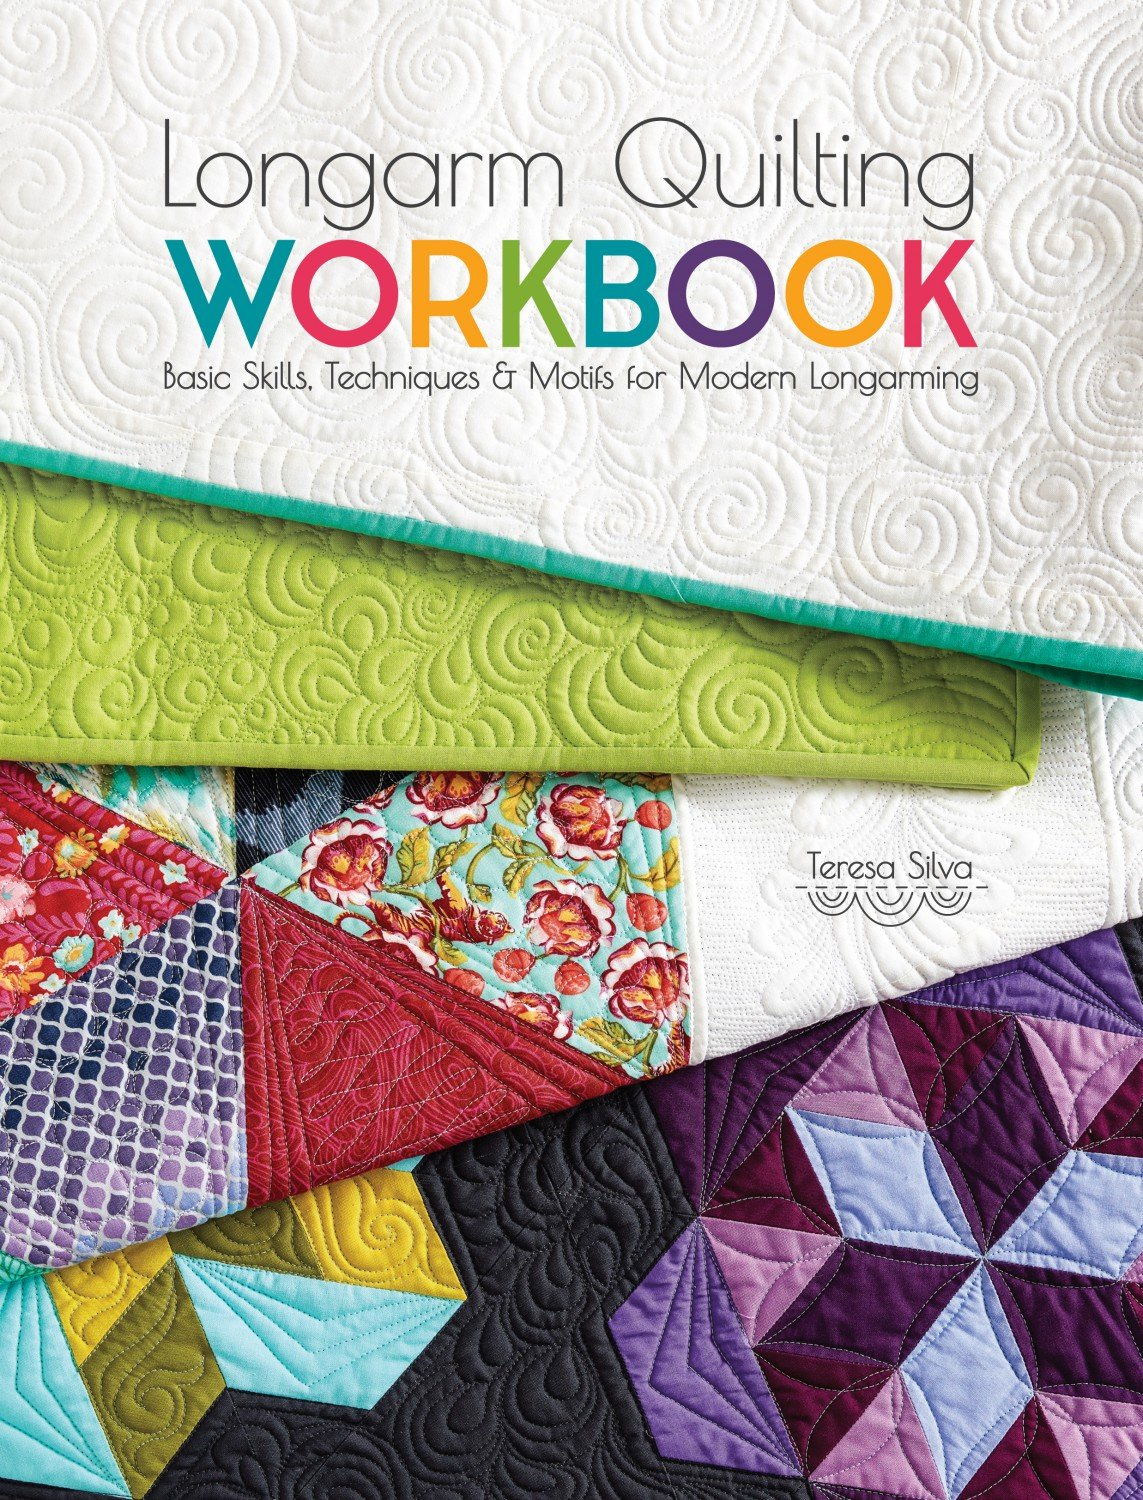 Longarm Quilting Workbook: Basic Skills Techniques & Motifs for Modern Longarming by Teresa Silva